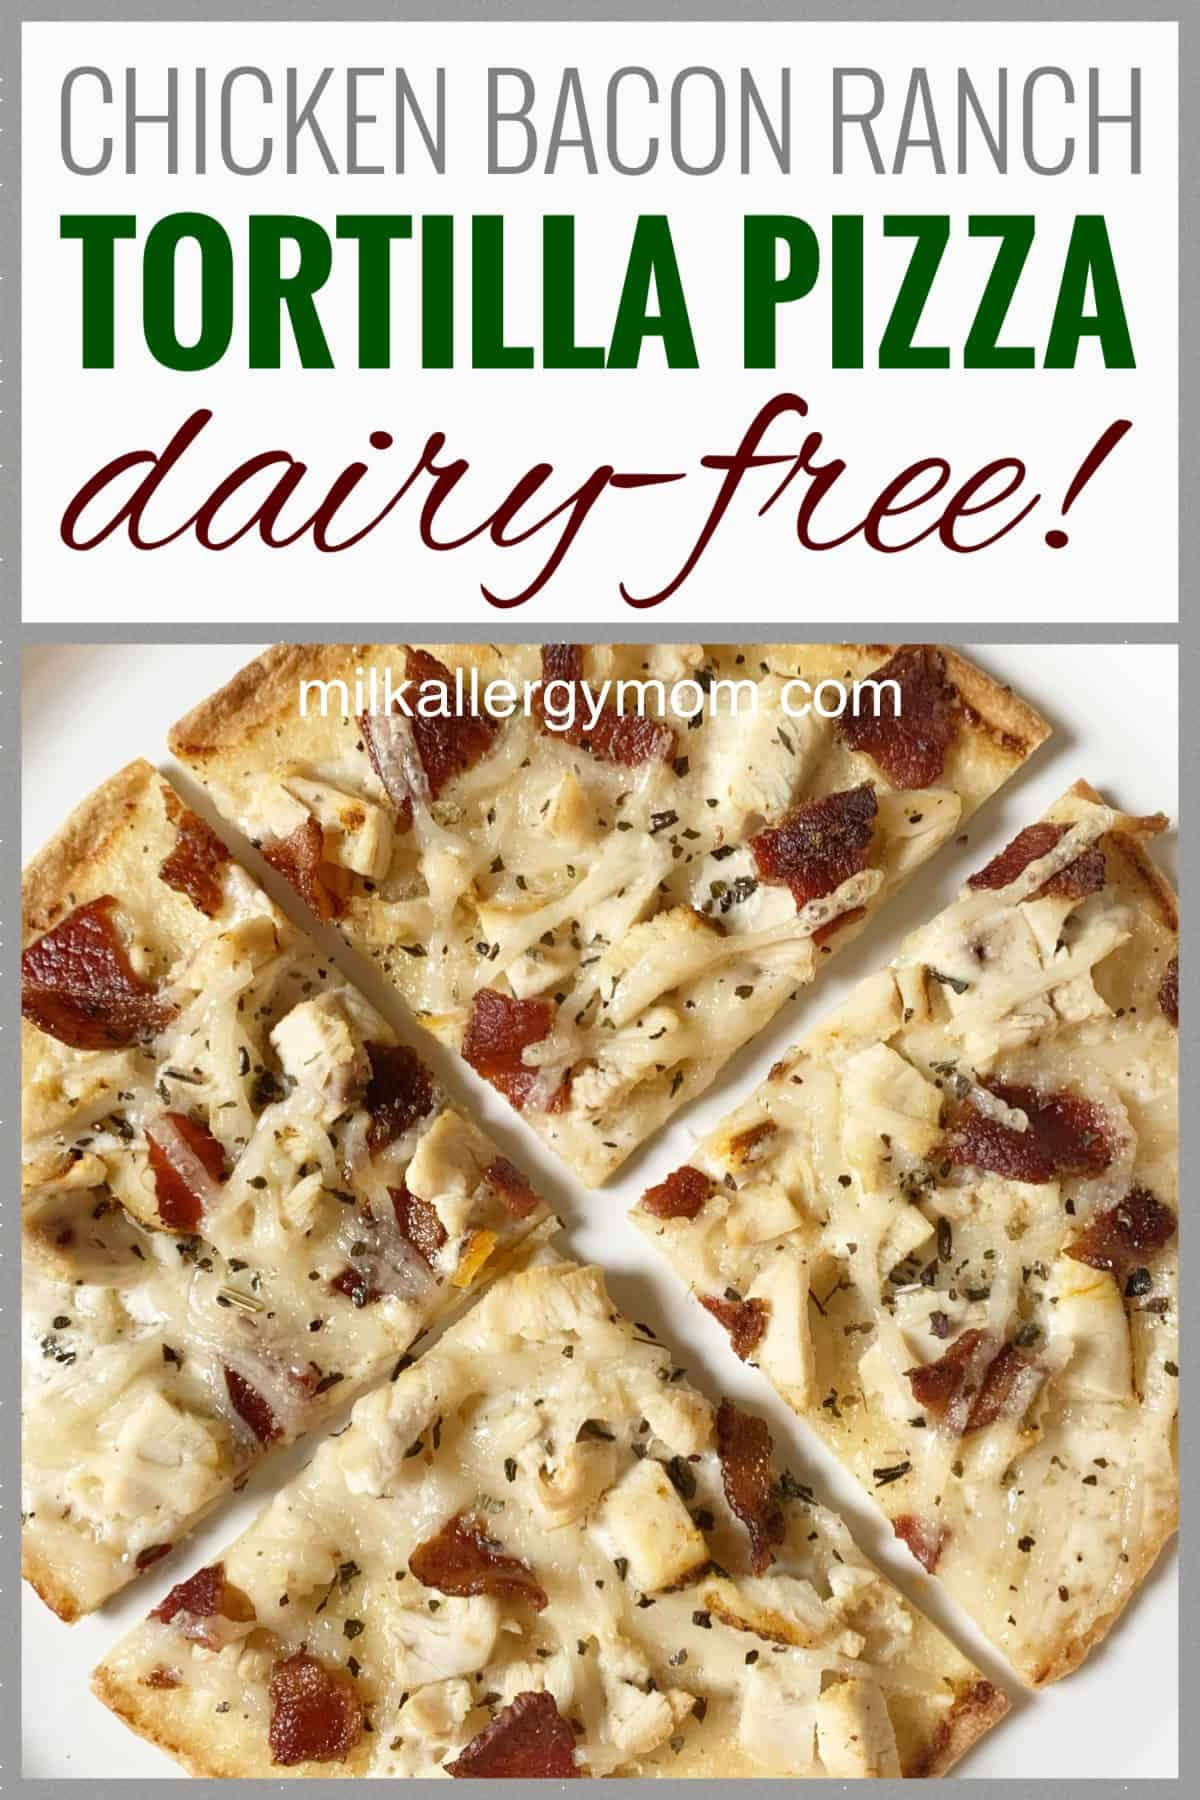 Chicken Bacon Ranch Pizza Dairy Free